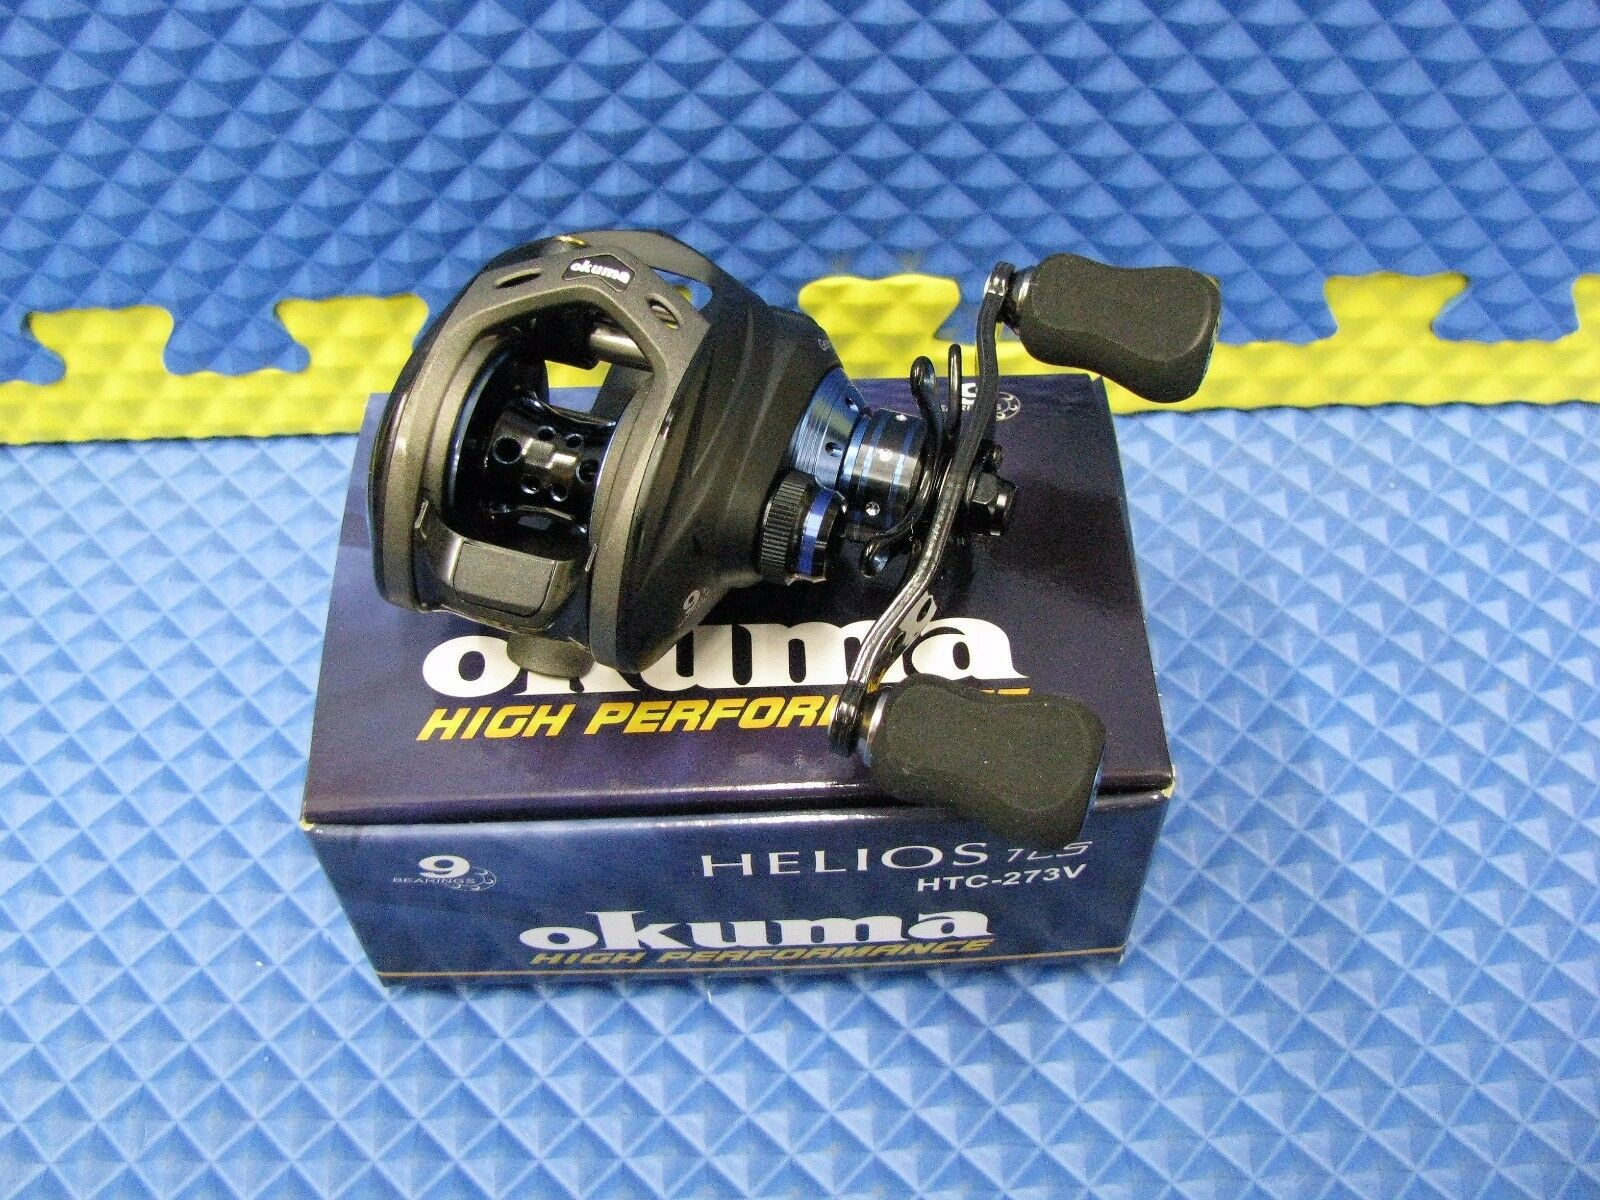 Okuma (HP) Helios TCS Blau Right Handed Niedrig Profile Baitcast Reel HTC-273V